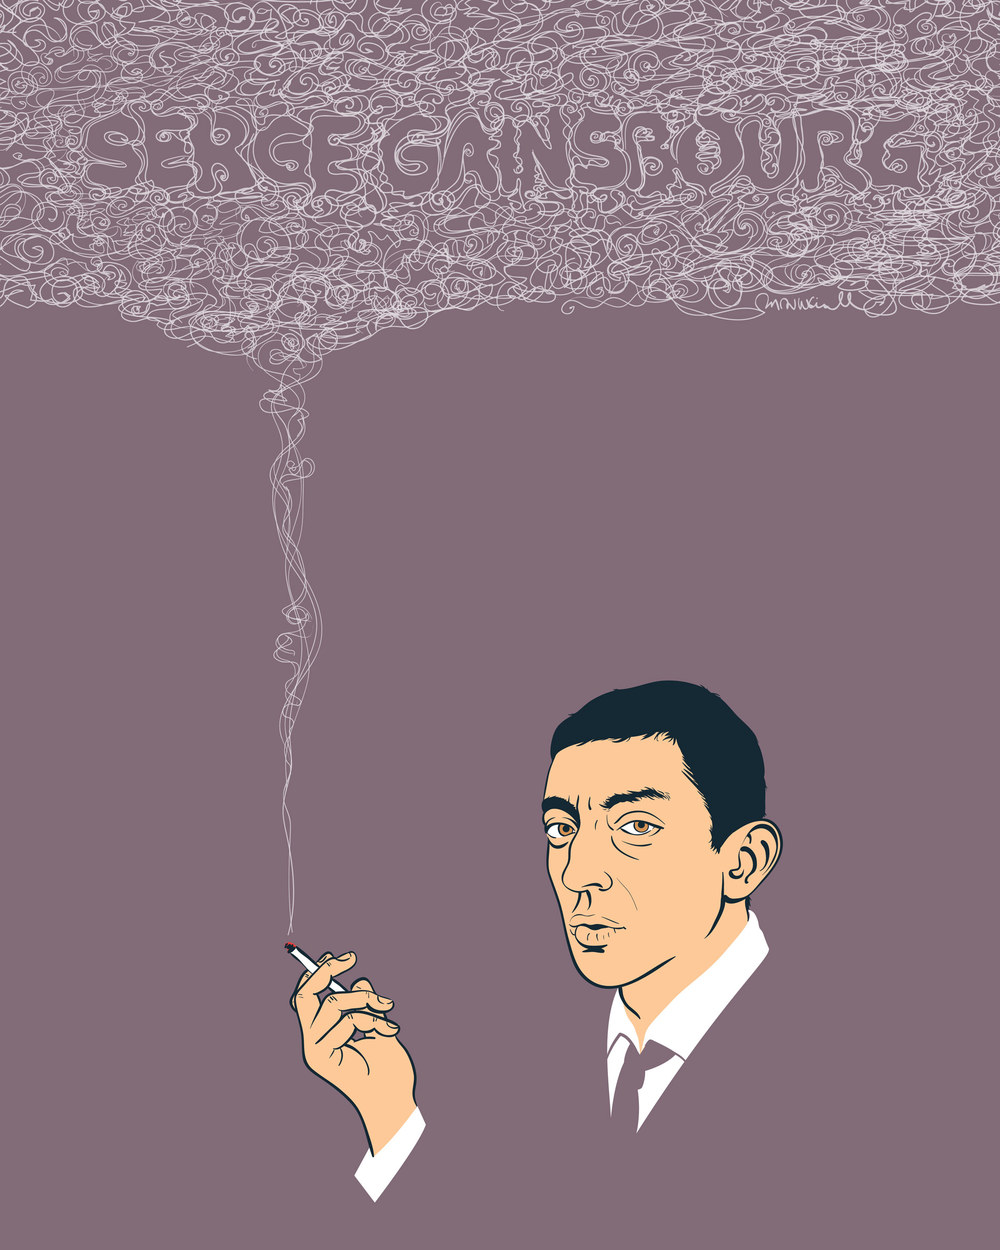 Serge Gainsbourg — Self-initiated poster featuring French musical icon, Serge Gainsbourg